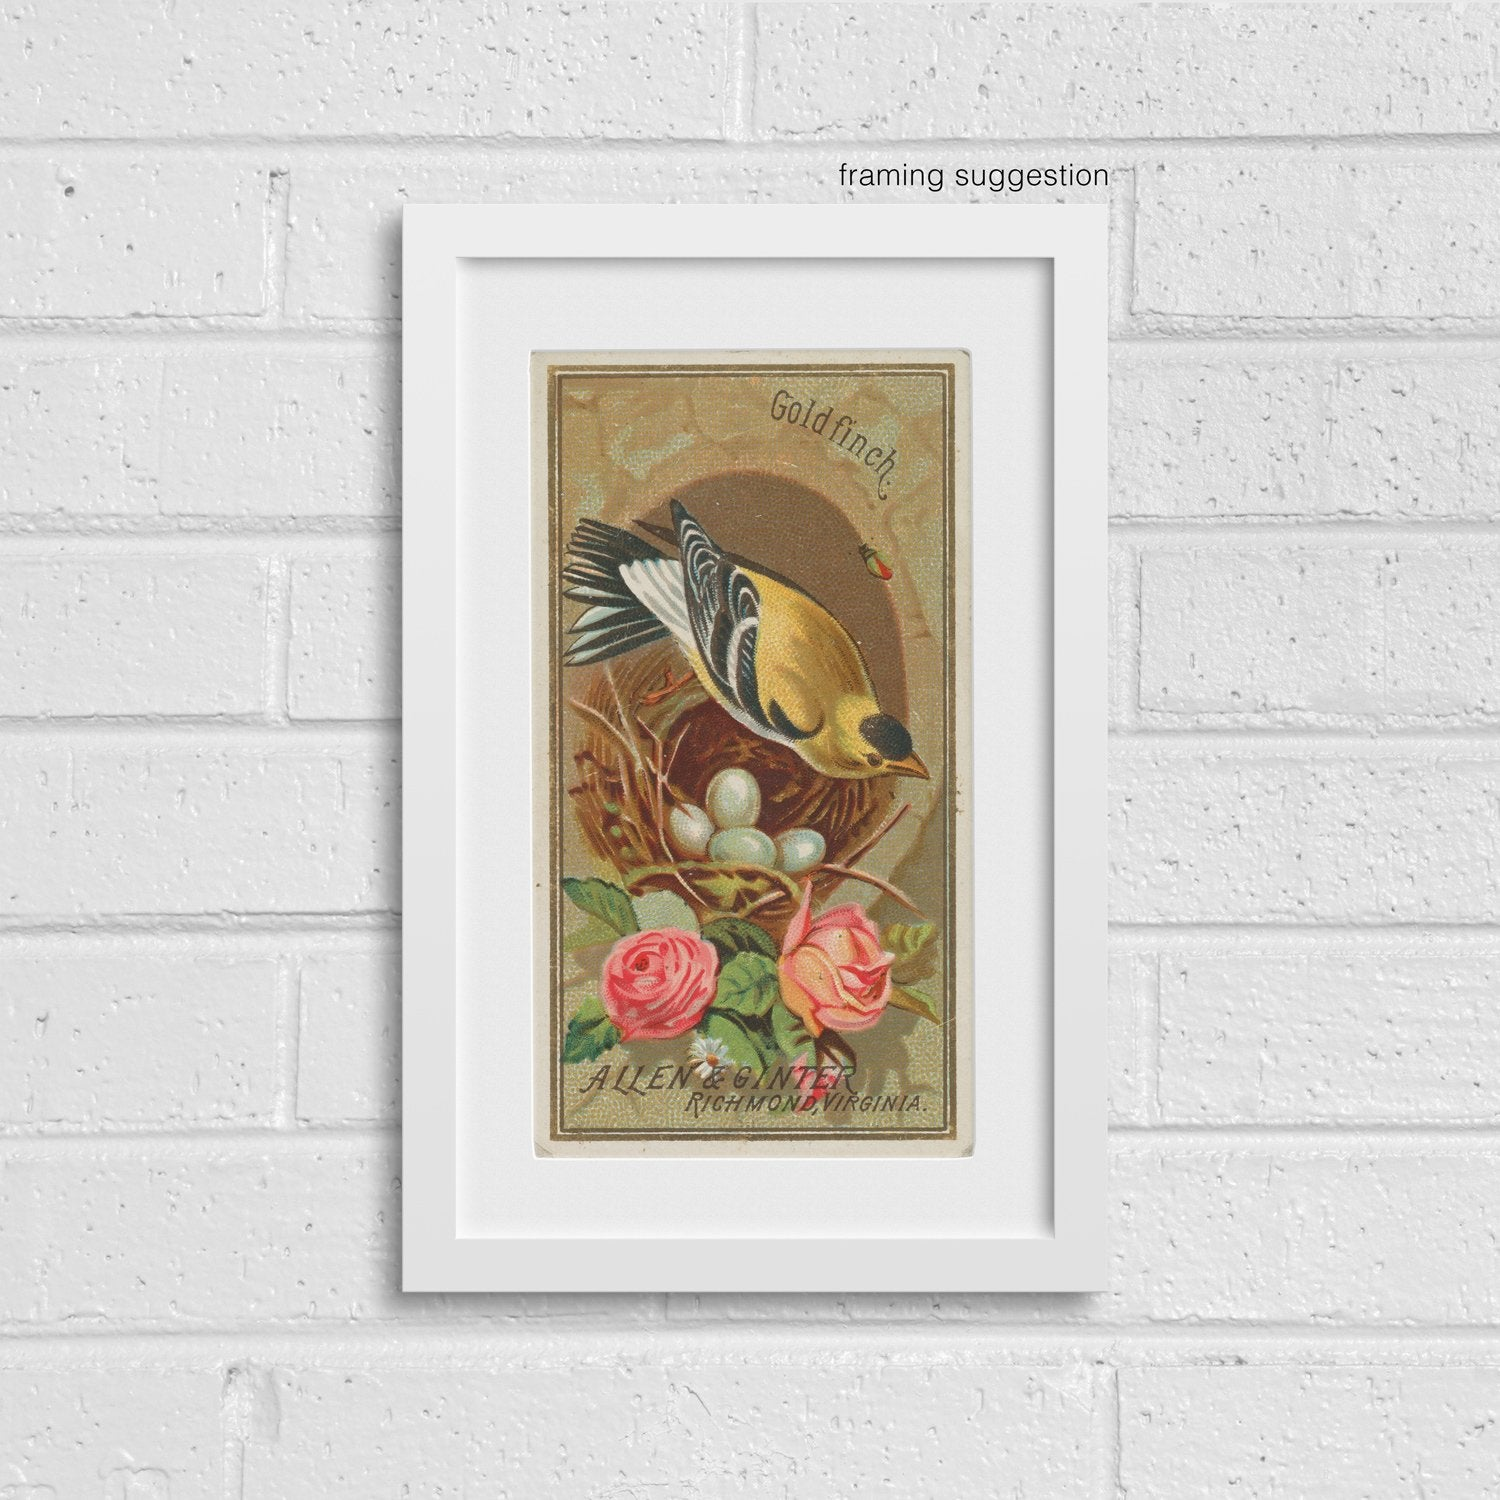 framed giclee print of vintage goldfinch bird illustration